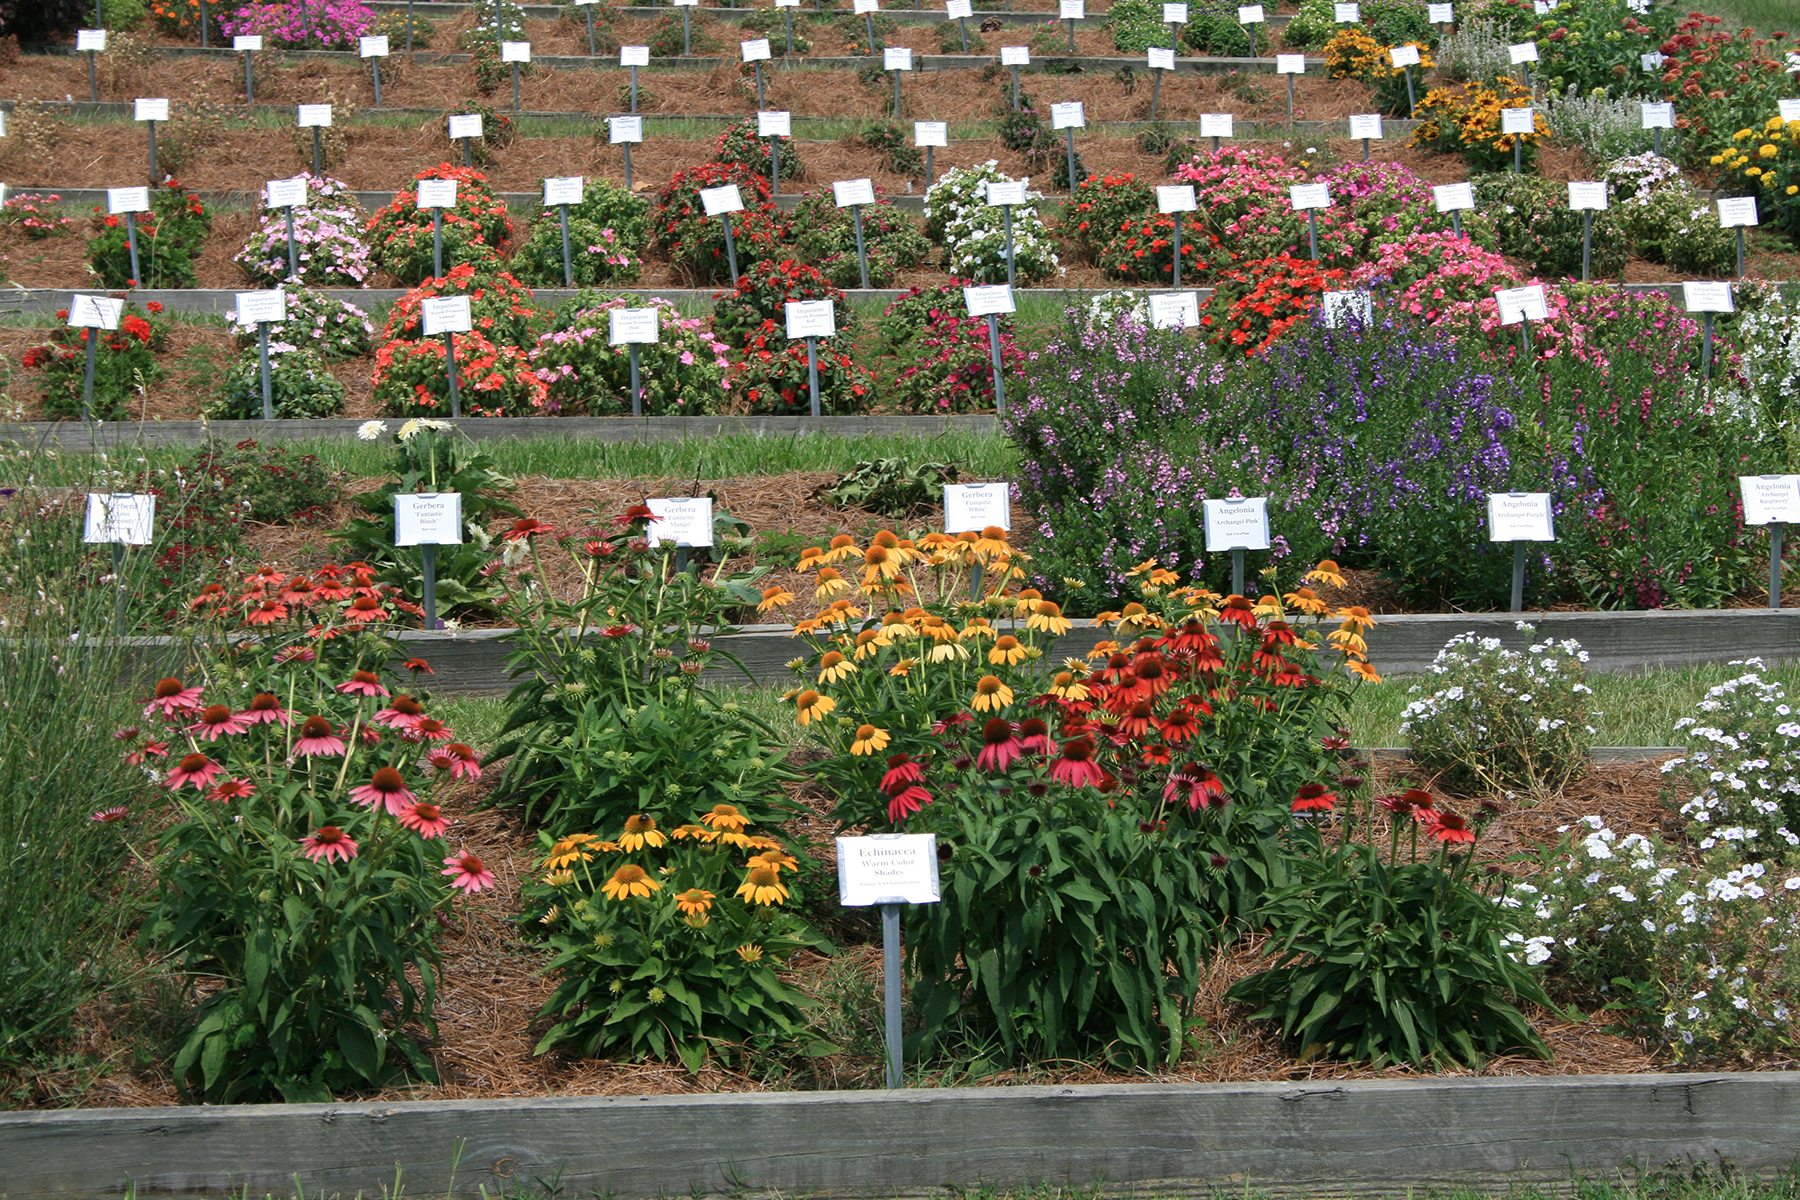 Plant trialing sites use raised beds to provide the best drainage and create a uniform order.